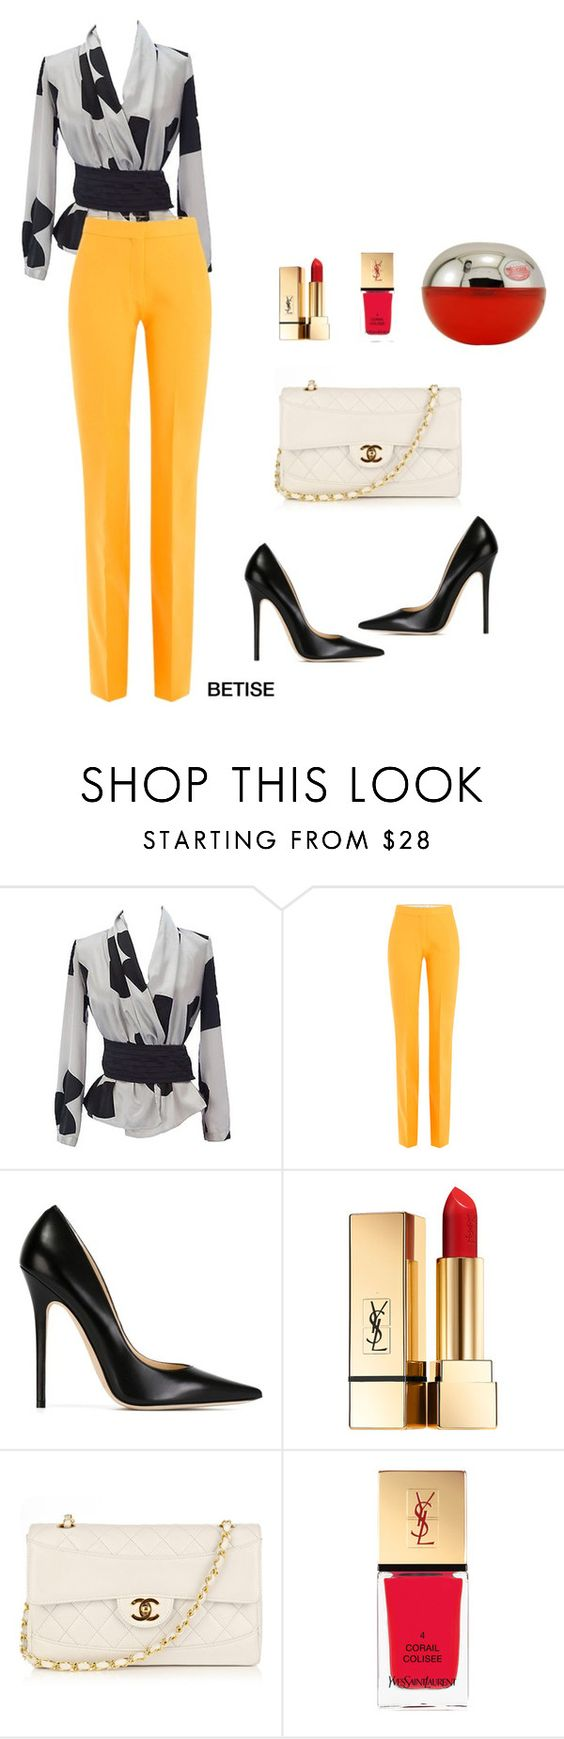 """""""CHIC ! ❤️"""" by betty-sanga ❤ liked on Polyvore featuring Emporio Armani, Victoria, Victoria Beckham, Jimmy Choo, Yves Saint Laurent and Chanel"""